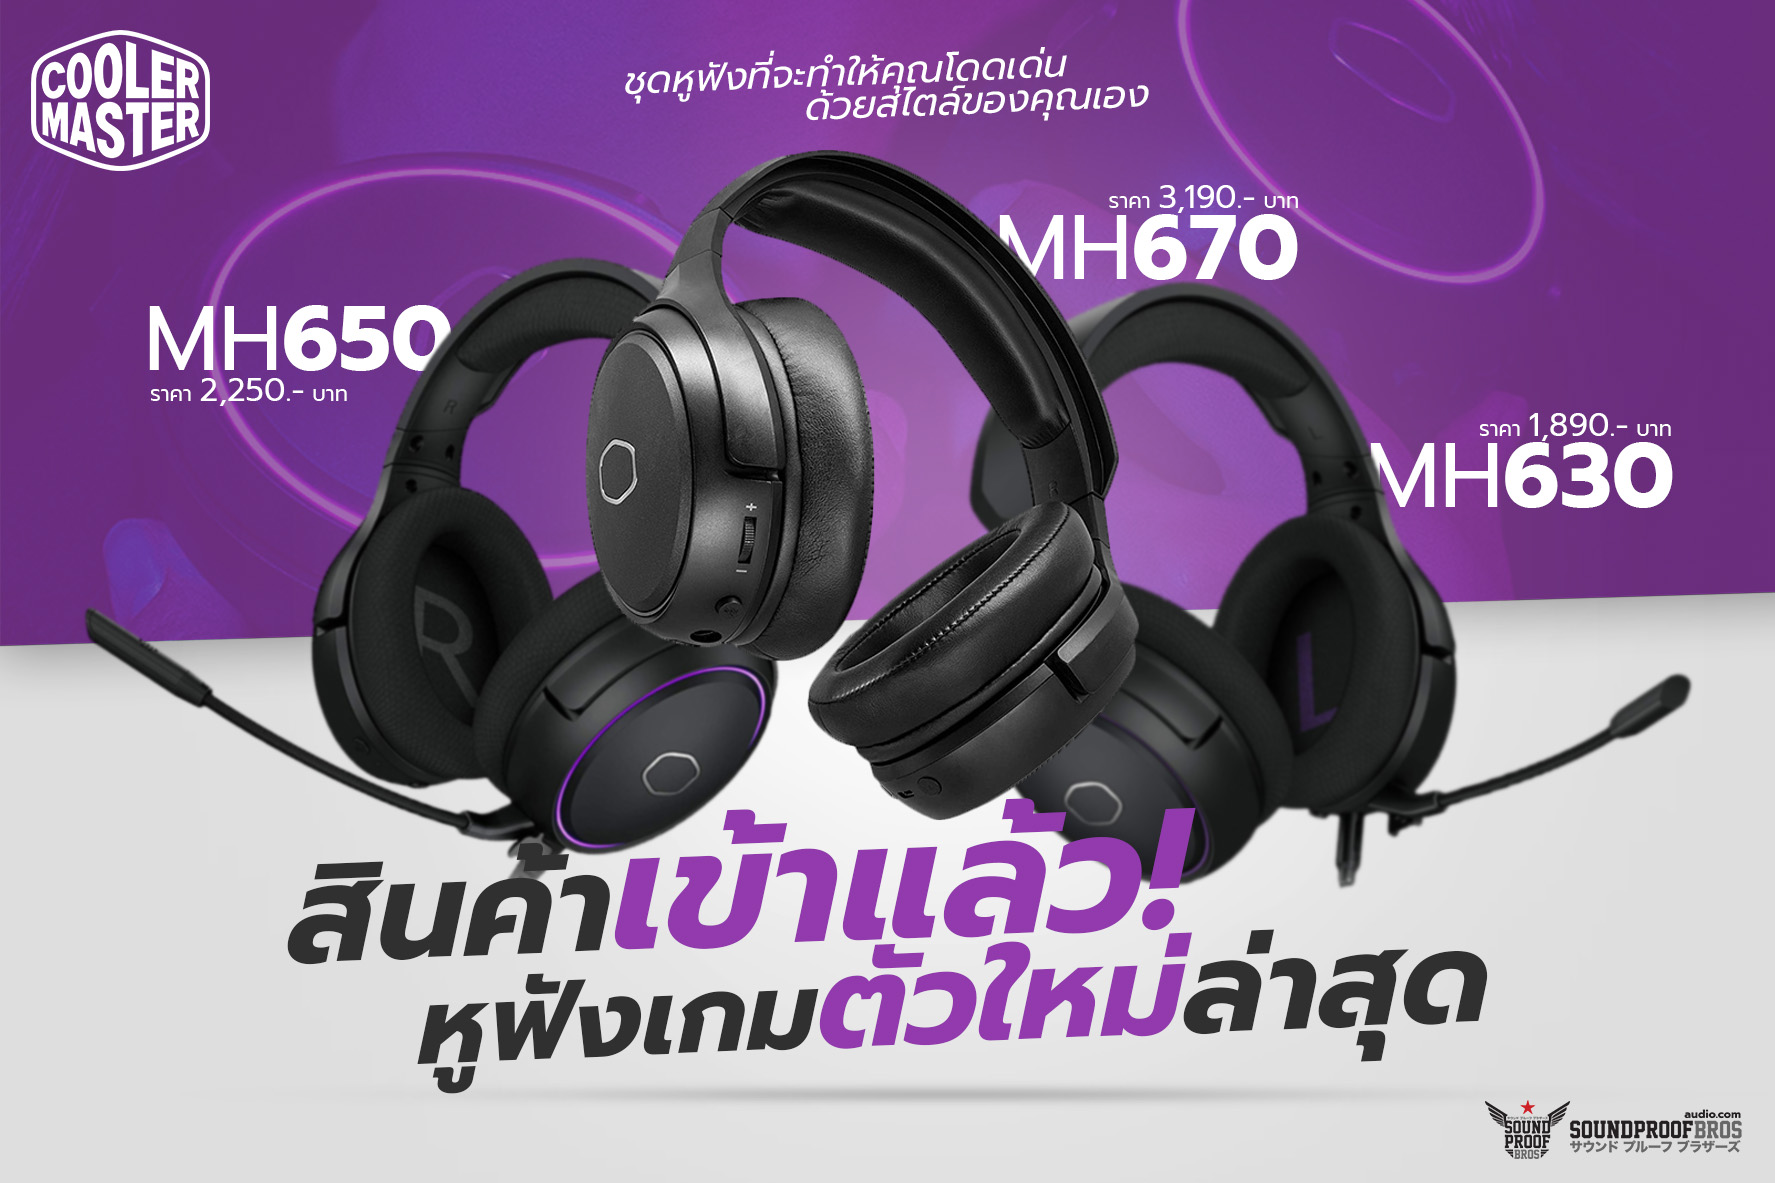 Cooler Master MH630 MH650 MH670 GAMING HEADSET